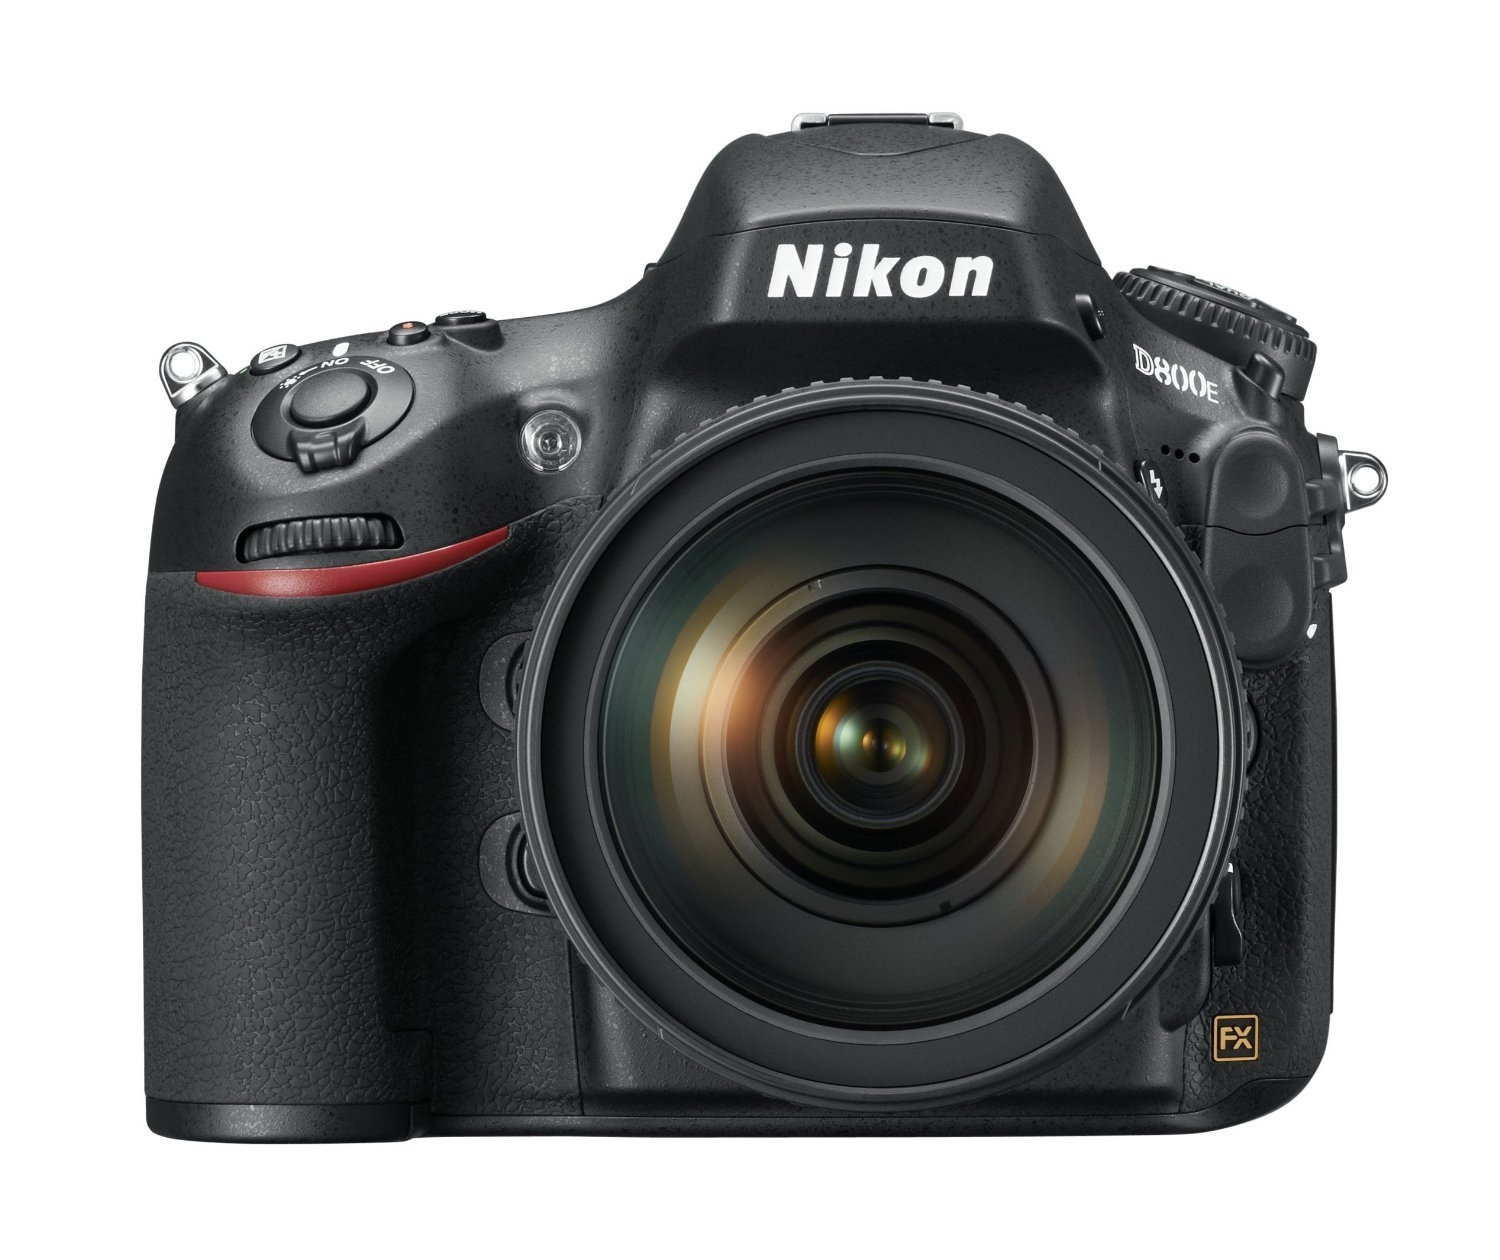 Nikon D800E 36.3 MP CMOS FX-Format Digital SLR Camera (Body Only) (Certified Refurbished)